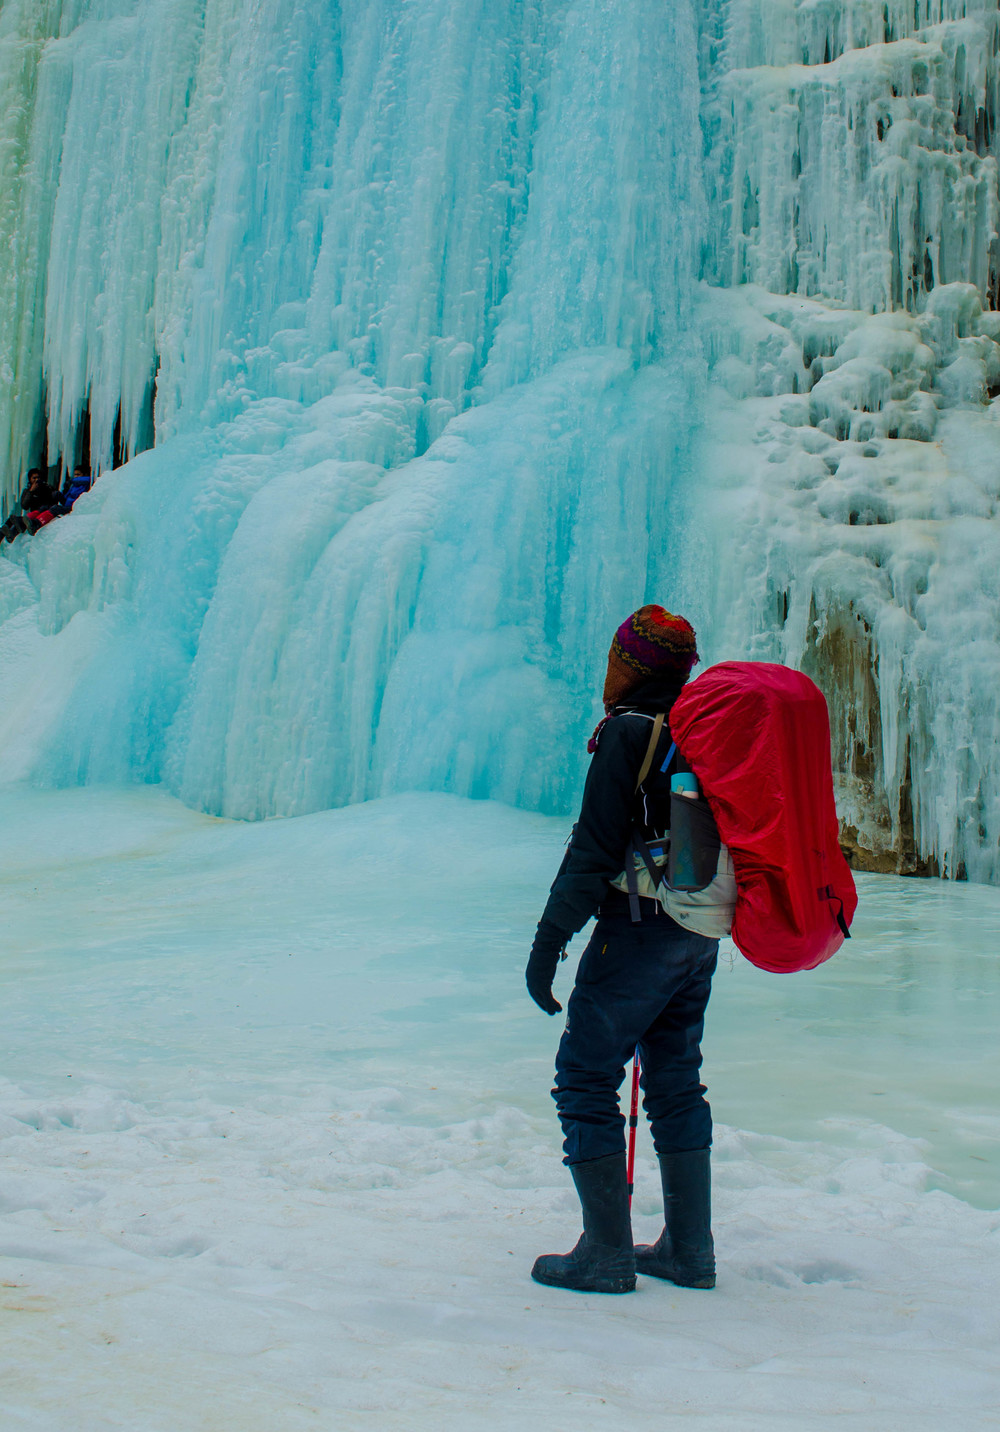 The frozen waterfall at Chadar